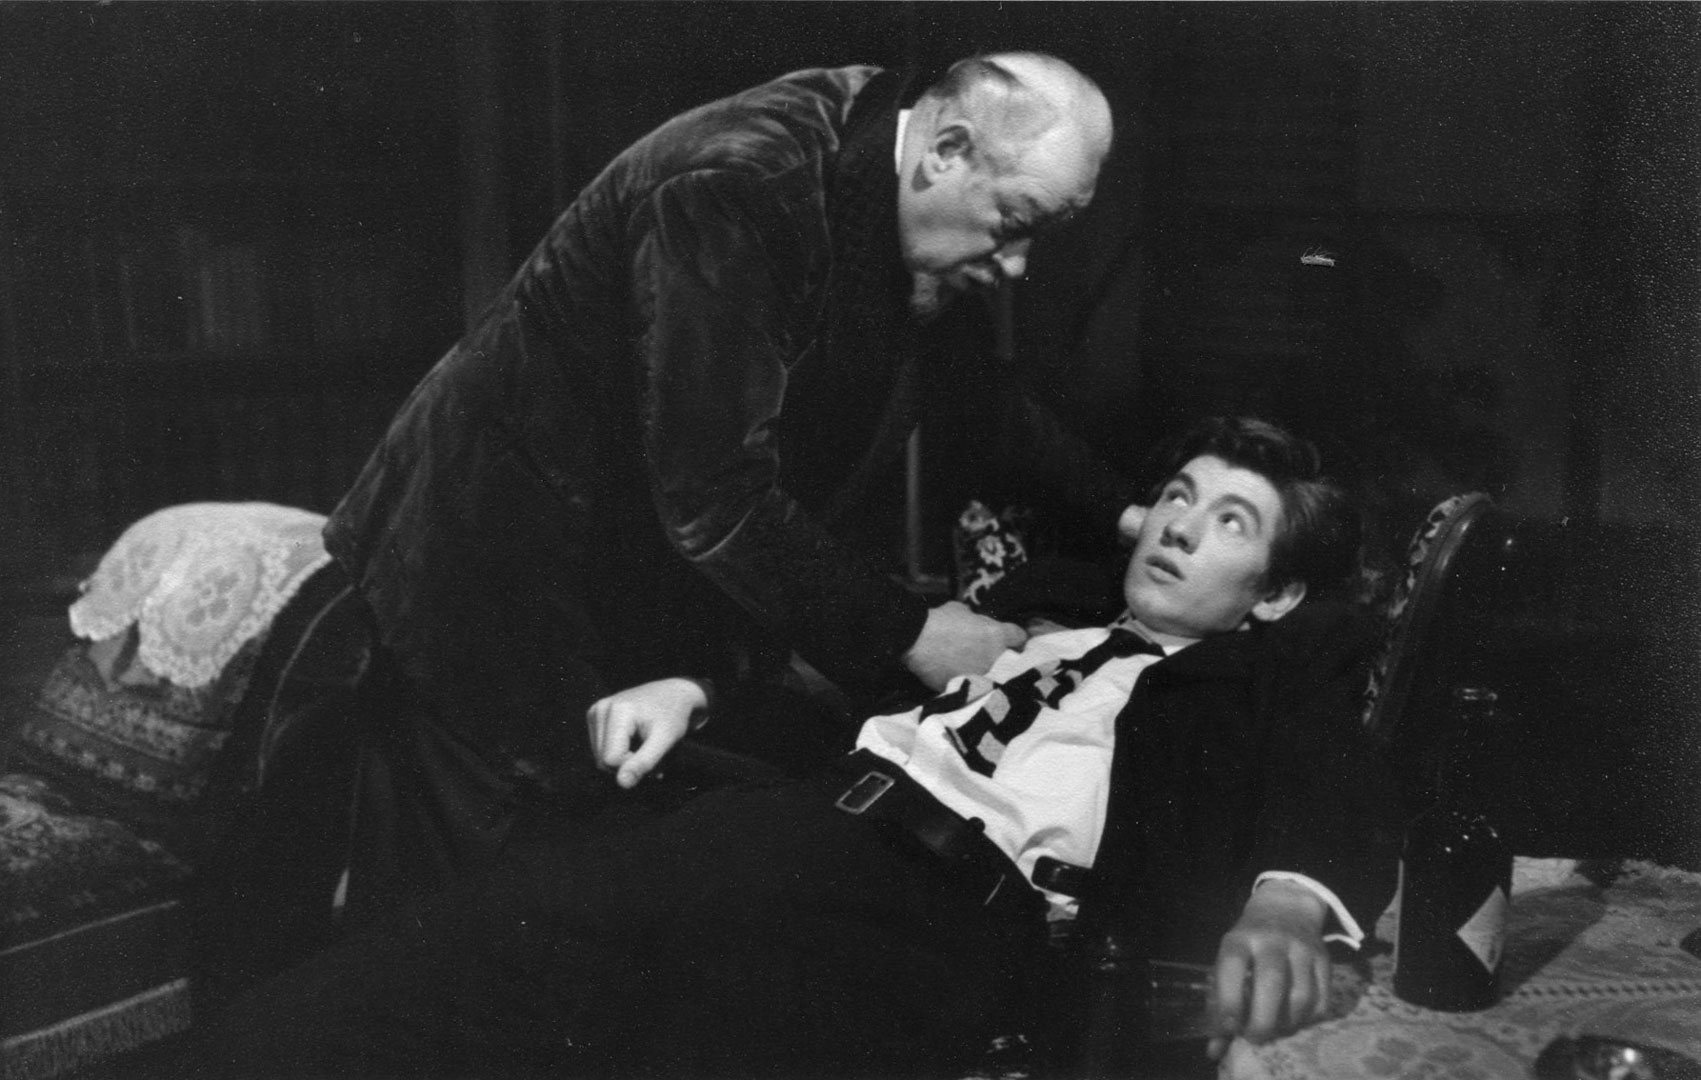 Clive Morton (James Tyrone) and Ian McKellen (Edmund Tyrone.)  <BR><BR><em>I was very excited to work with Clive,  trailing glory from films and the West End. By this